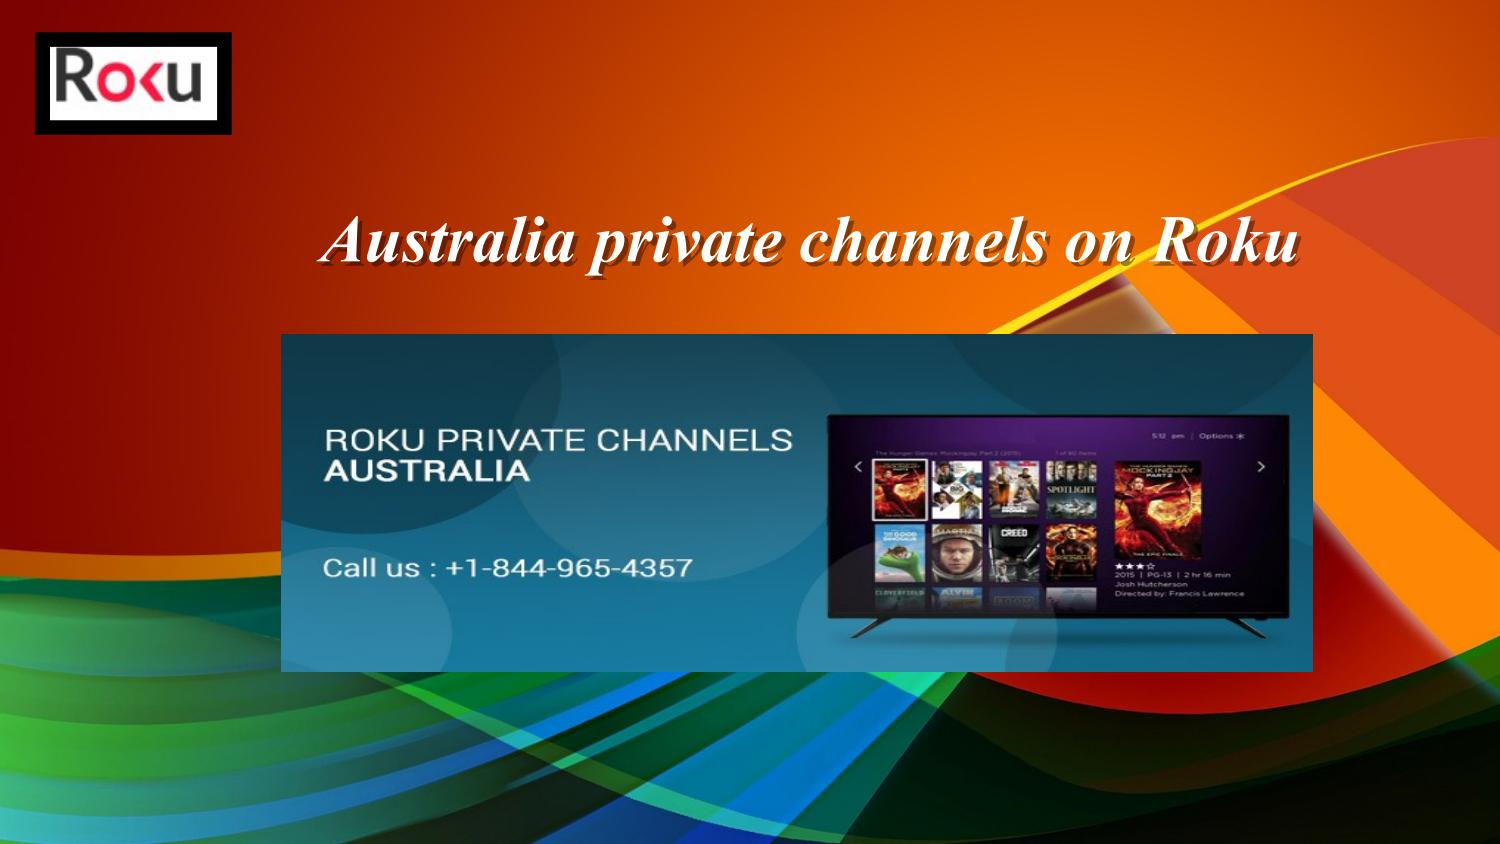 Australia private channels on roku by Rokuactivationcode - issuu